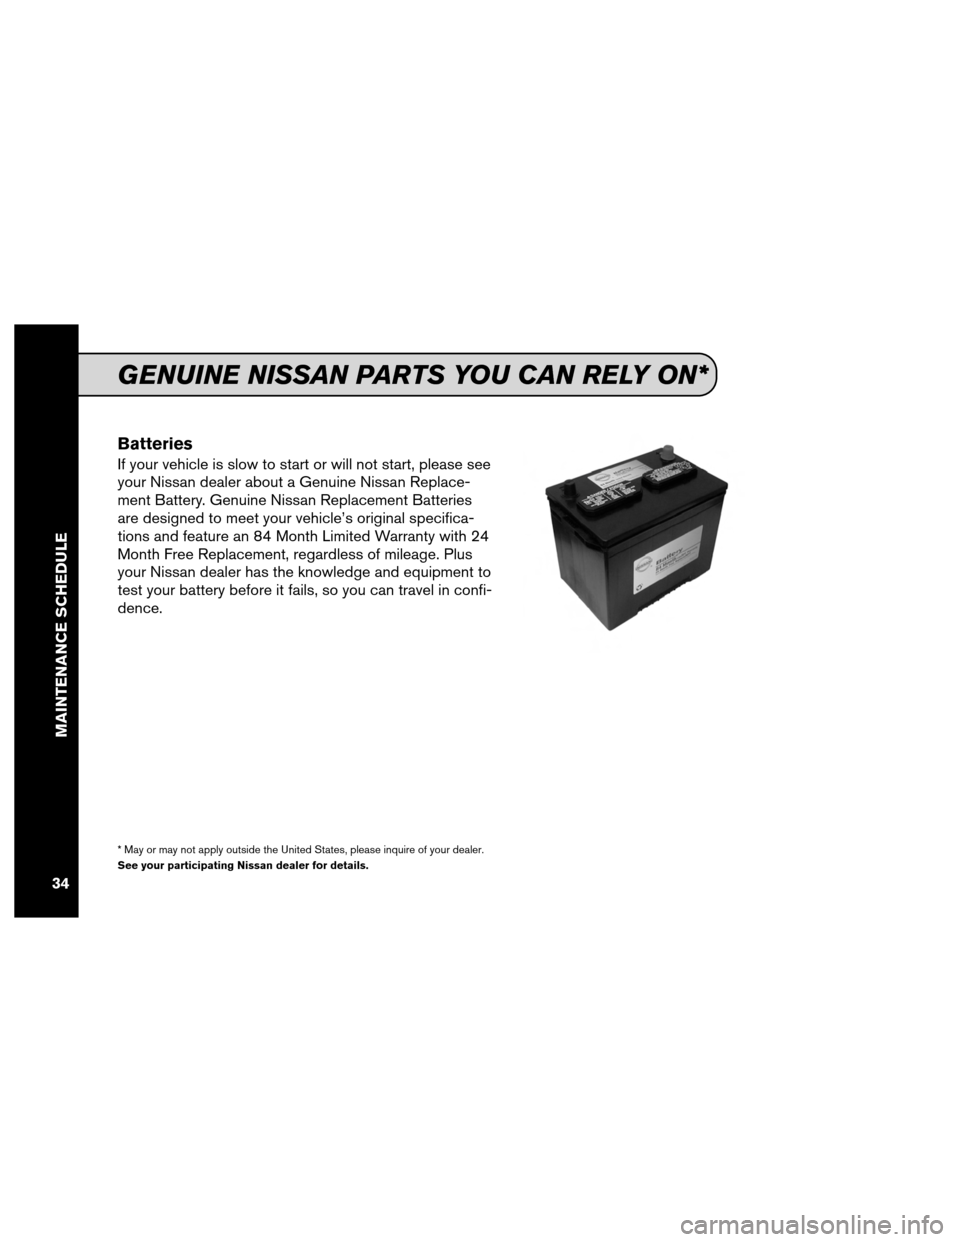 NISSAN SENTRA 2012 B16 / 6.G Service And Maintenance Guide Batteries If your vehicle is slow to start or will not start, please see your Nissan dealer about a Genuine Nissan Replace- ment Battery. Genuine Nissan Replacement Batteries are designed to meet your